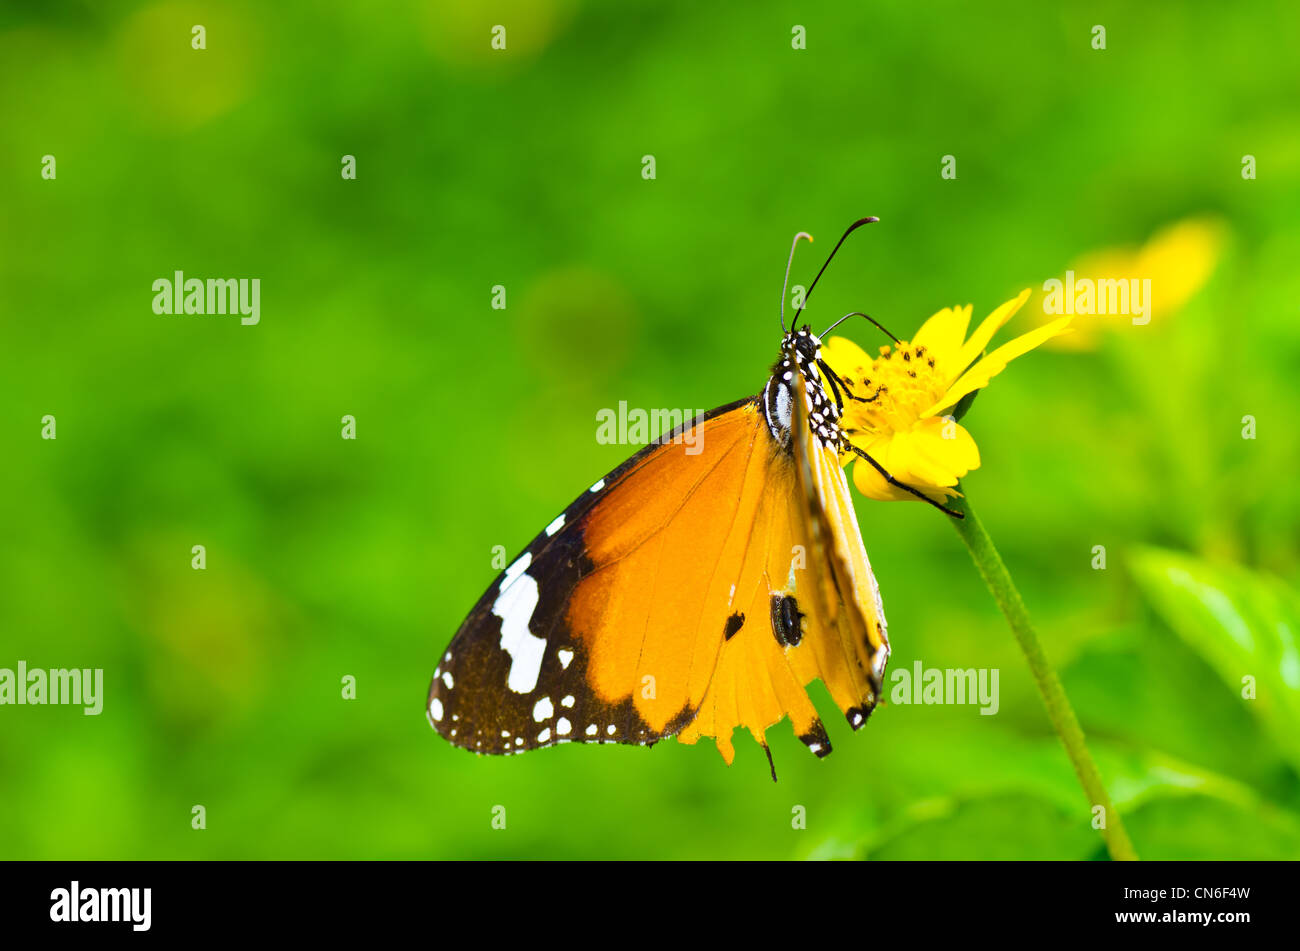 butterfly in green nature or in the garden - Stock Image